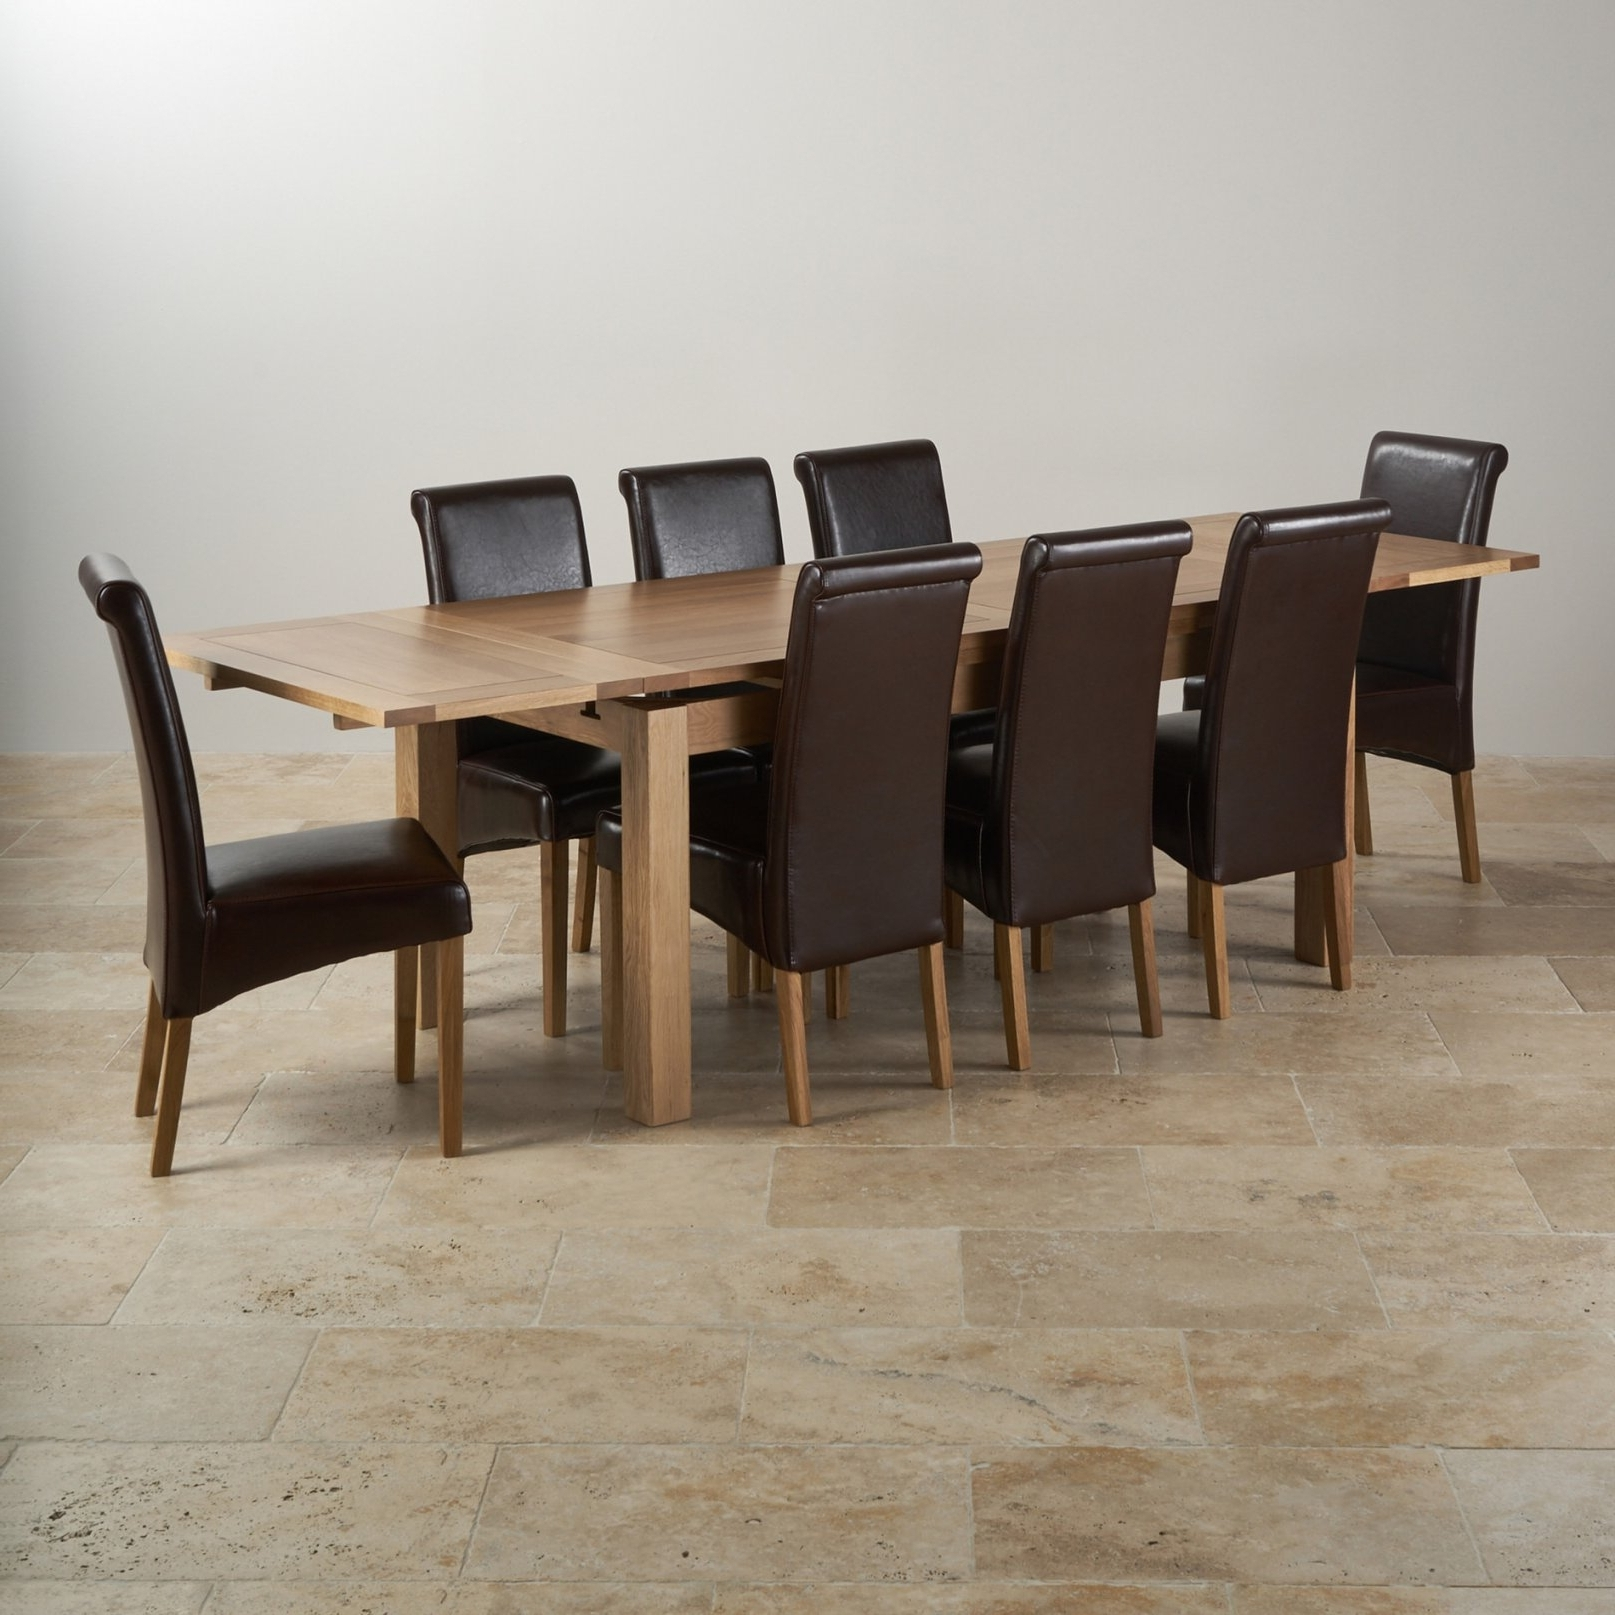 Most Recent Sophisticated Dorset Oak Dining Set 6Ft Table With 8 Chairs For For Regarding Solid Oak Dining Tables And 8 Chairs (View 9 of 25)